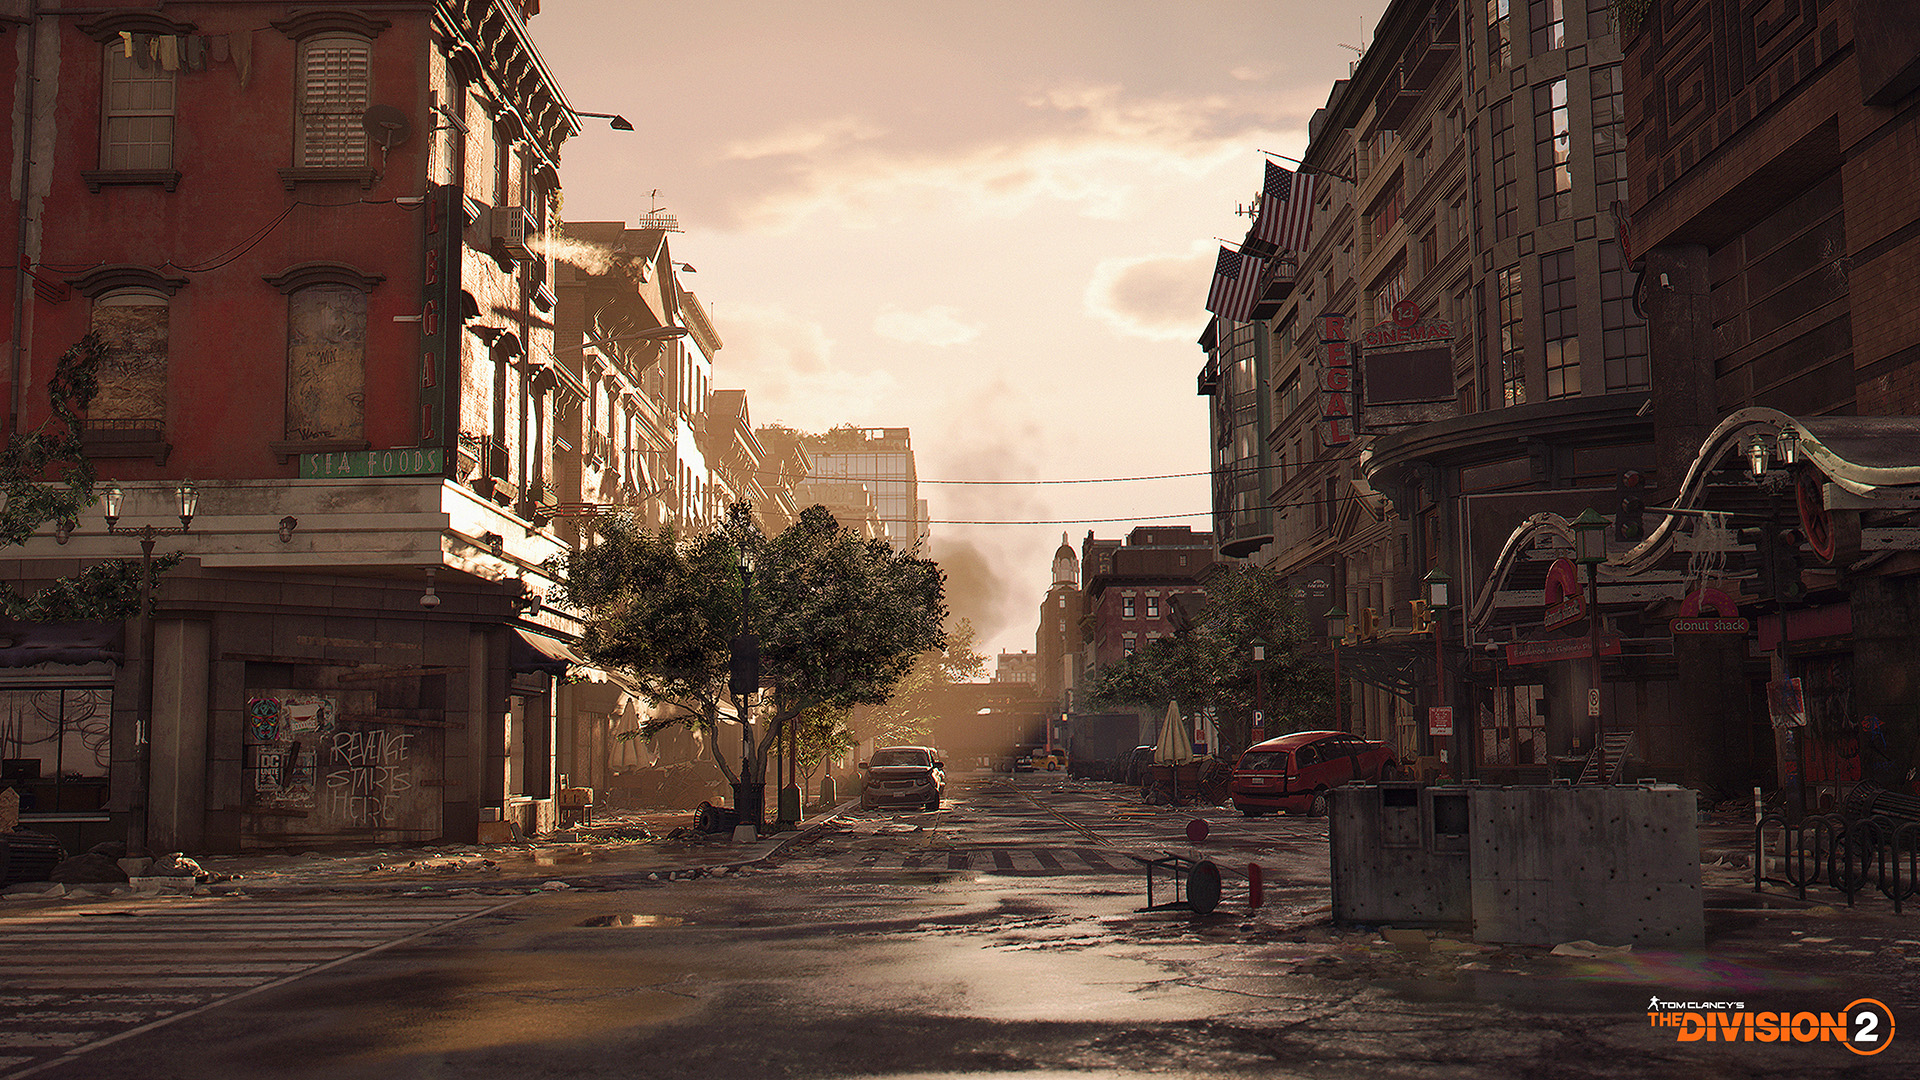 The Division 2 Review - A Beautiful Mess - Rocket Chainsaw